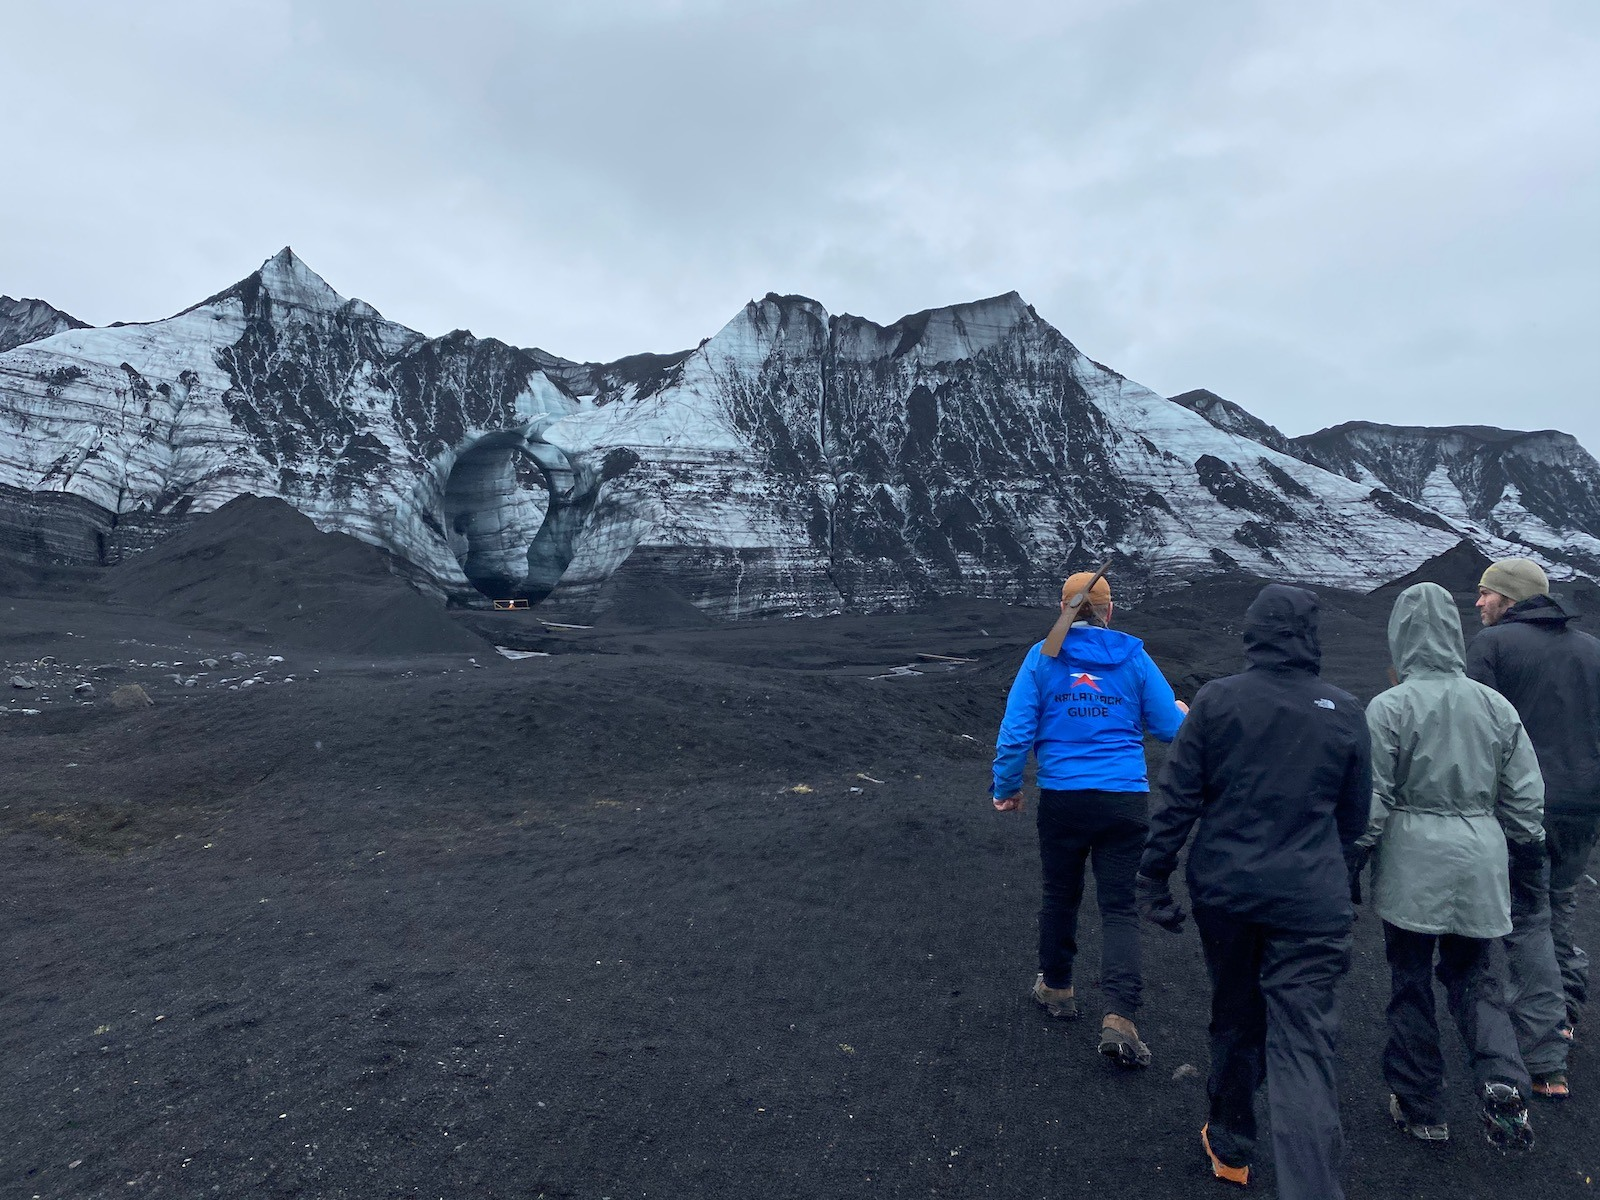 Family and tour guide walking through the lava fields in Iceland.